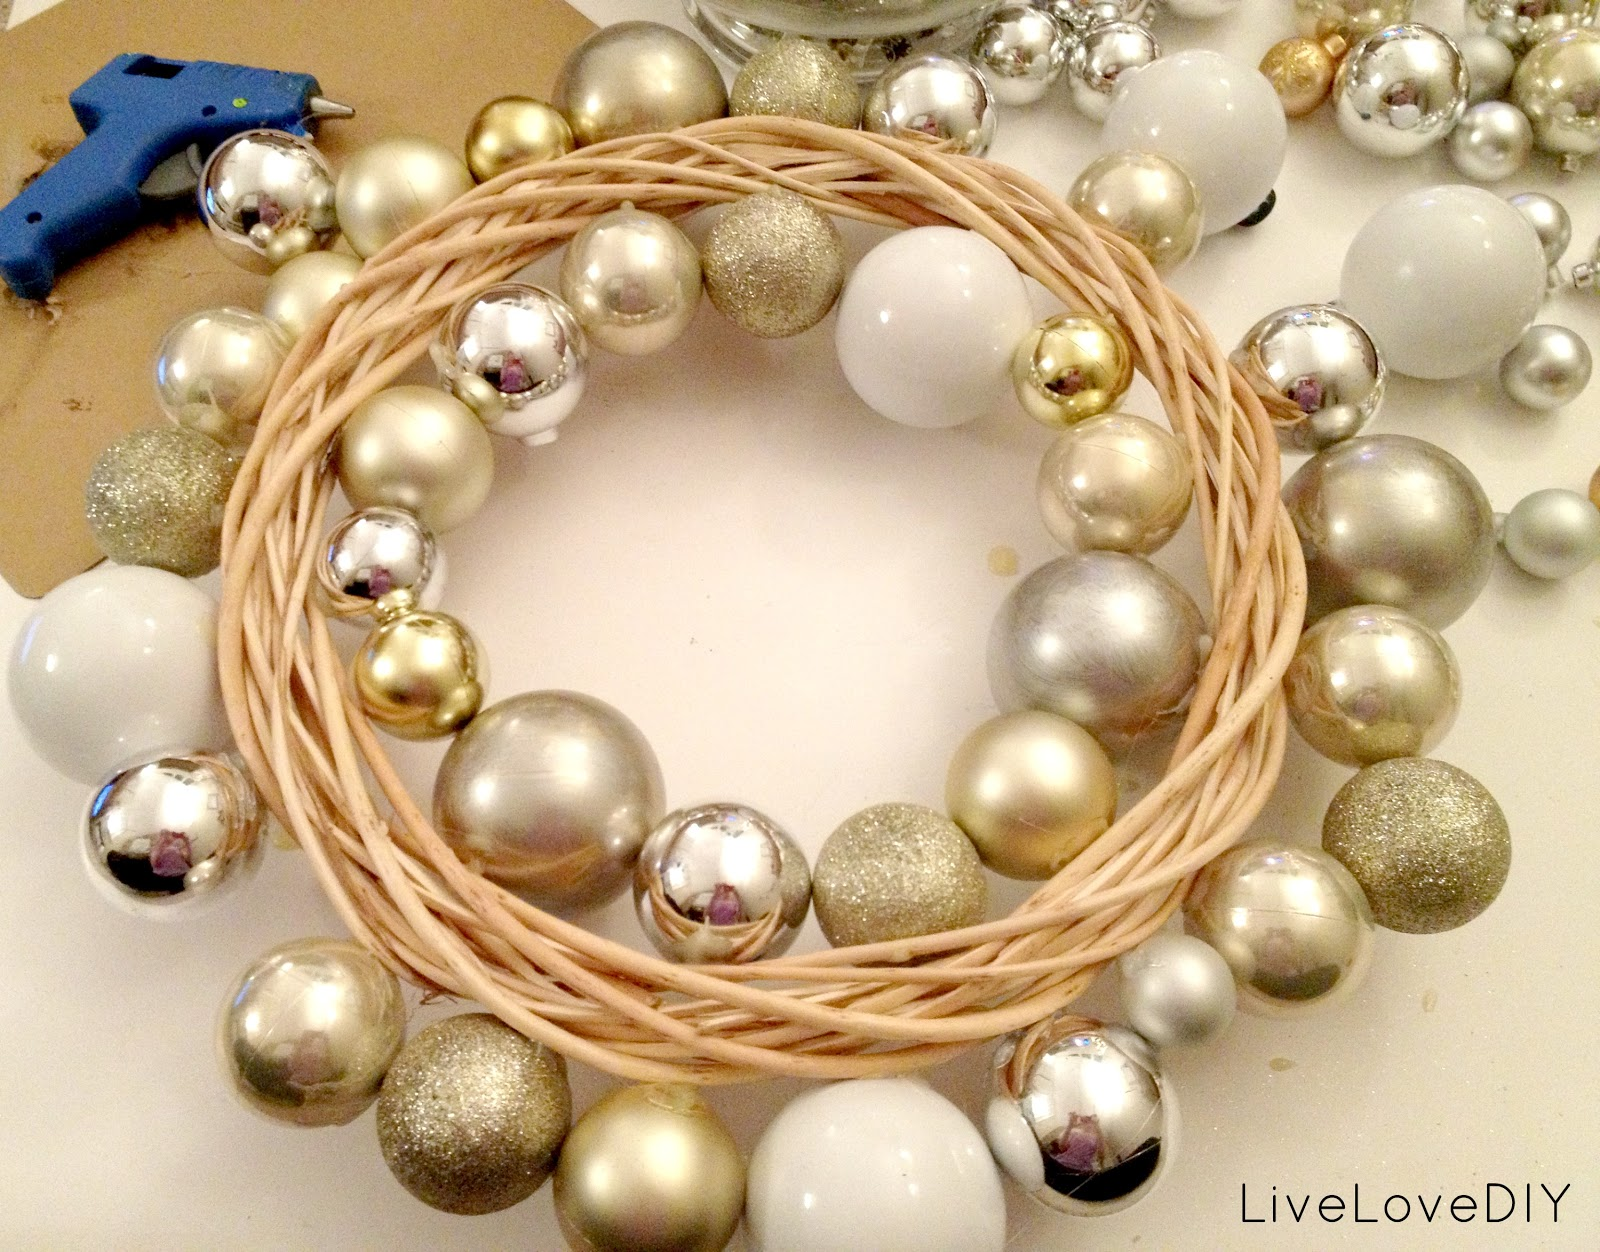 Diy christmas ornaments for newlyweds - Livelovediy